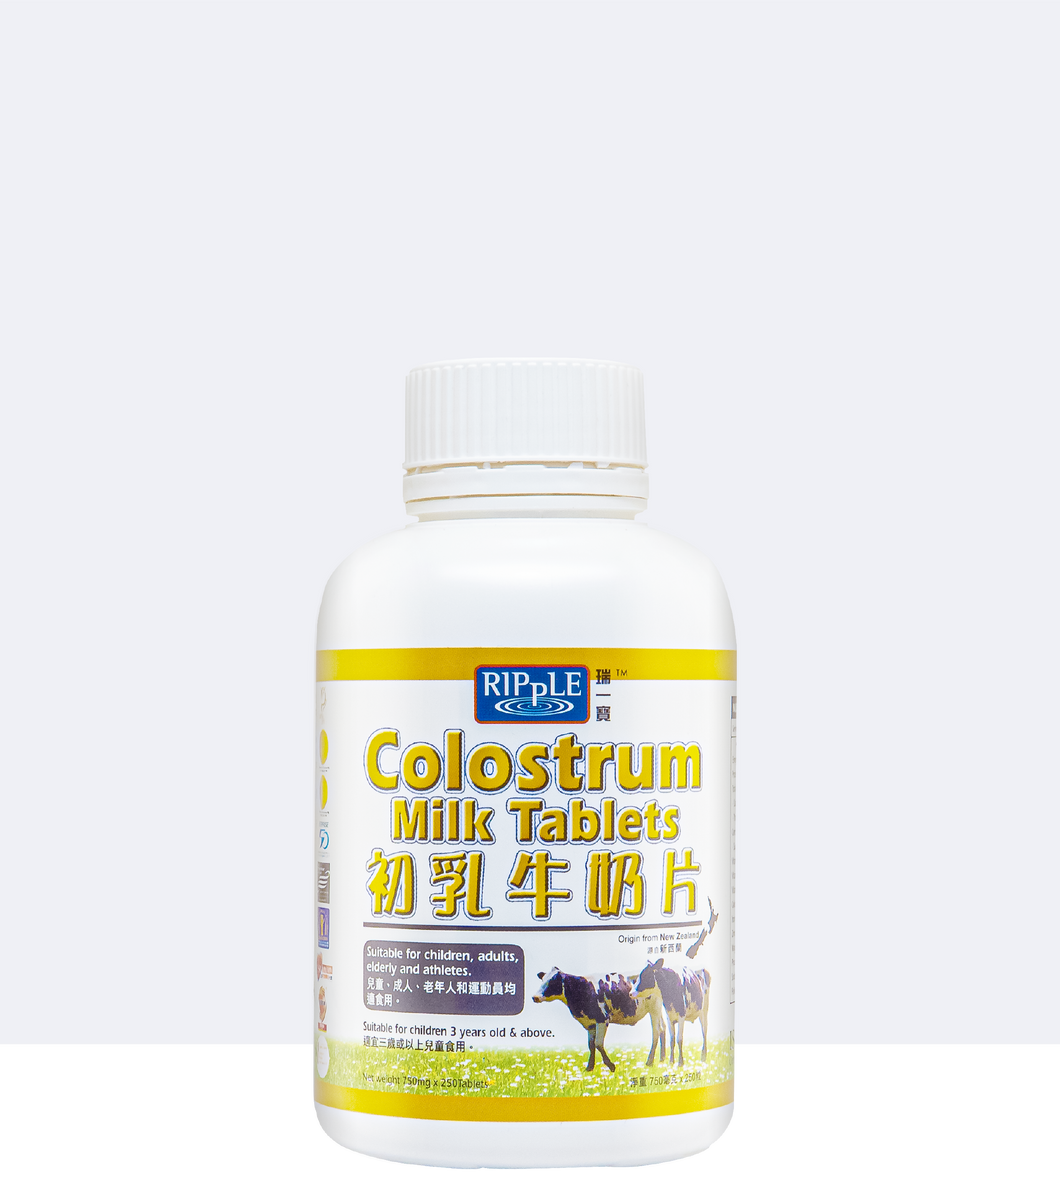 Ripple Colostrum Milk Tablets 250s - Fei Fah Medical Manufacturing Pte. Ltd.